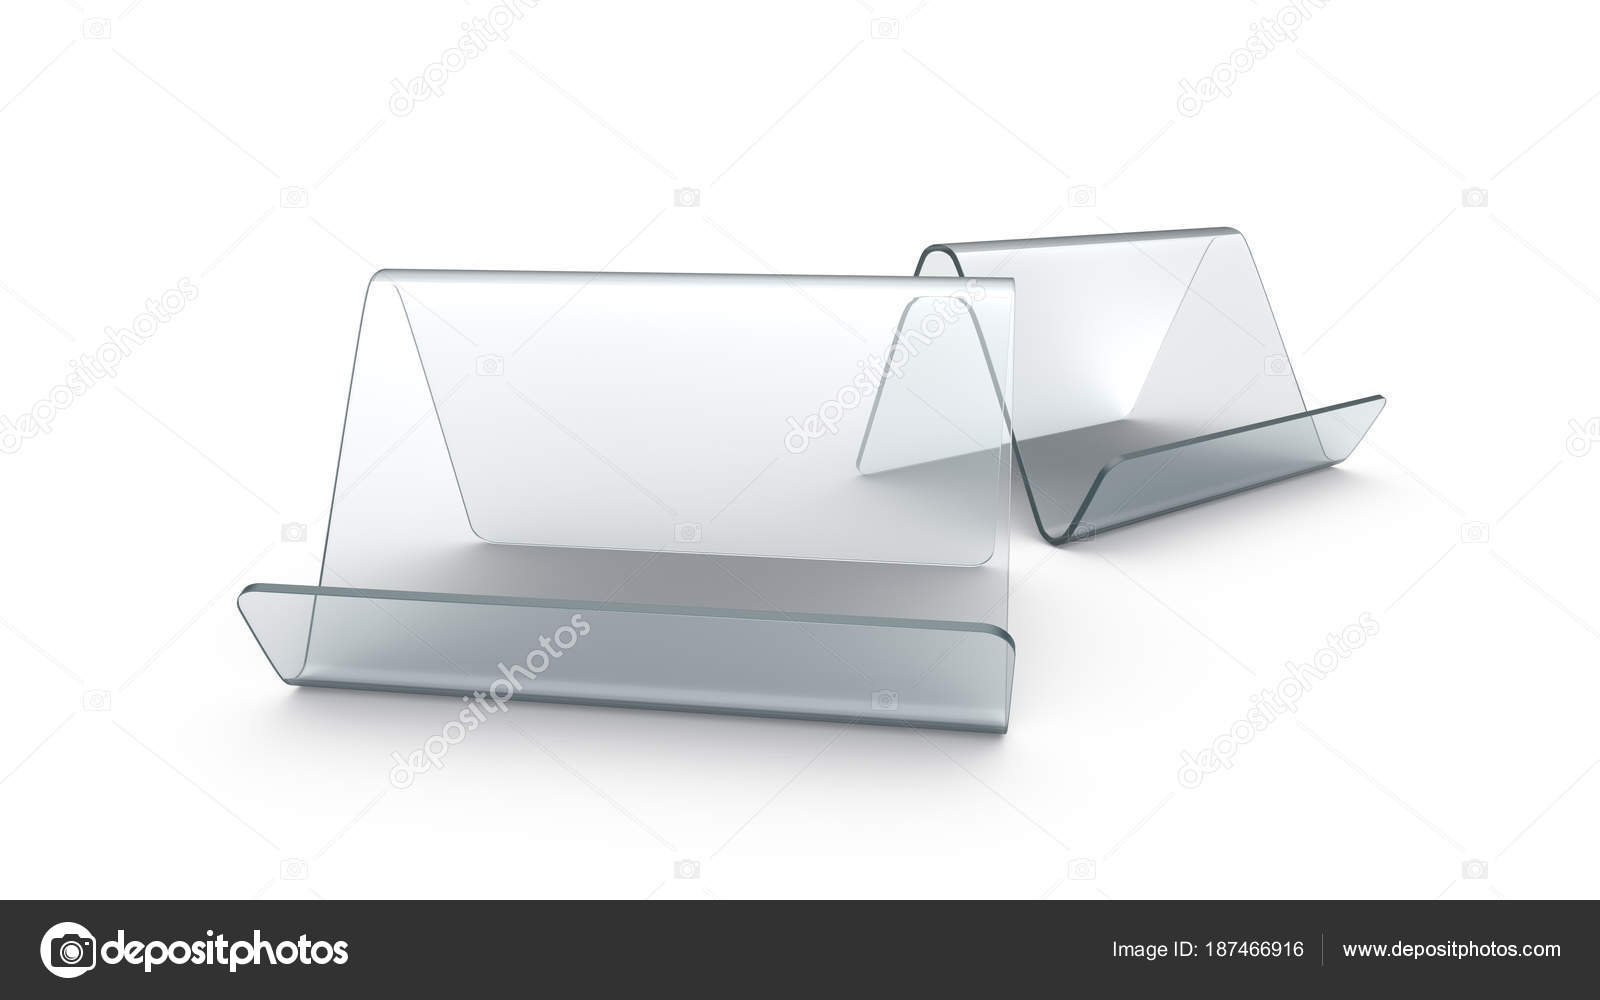 Display Stand Or Acrylic Table Tent Stock Photo Kchungtw - Acrylic table tents